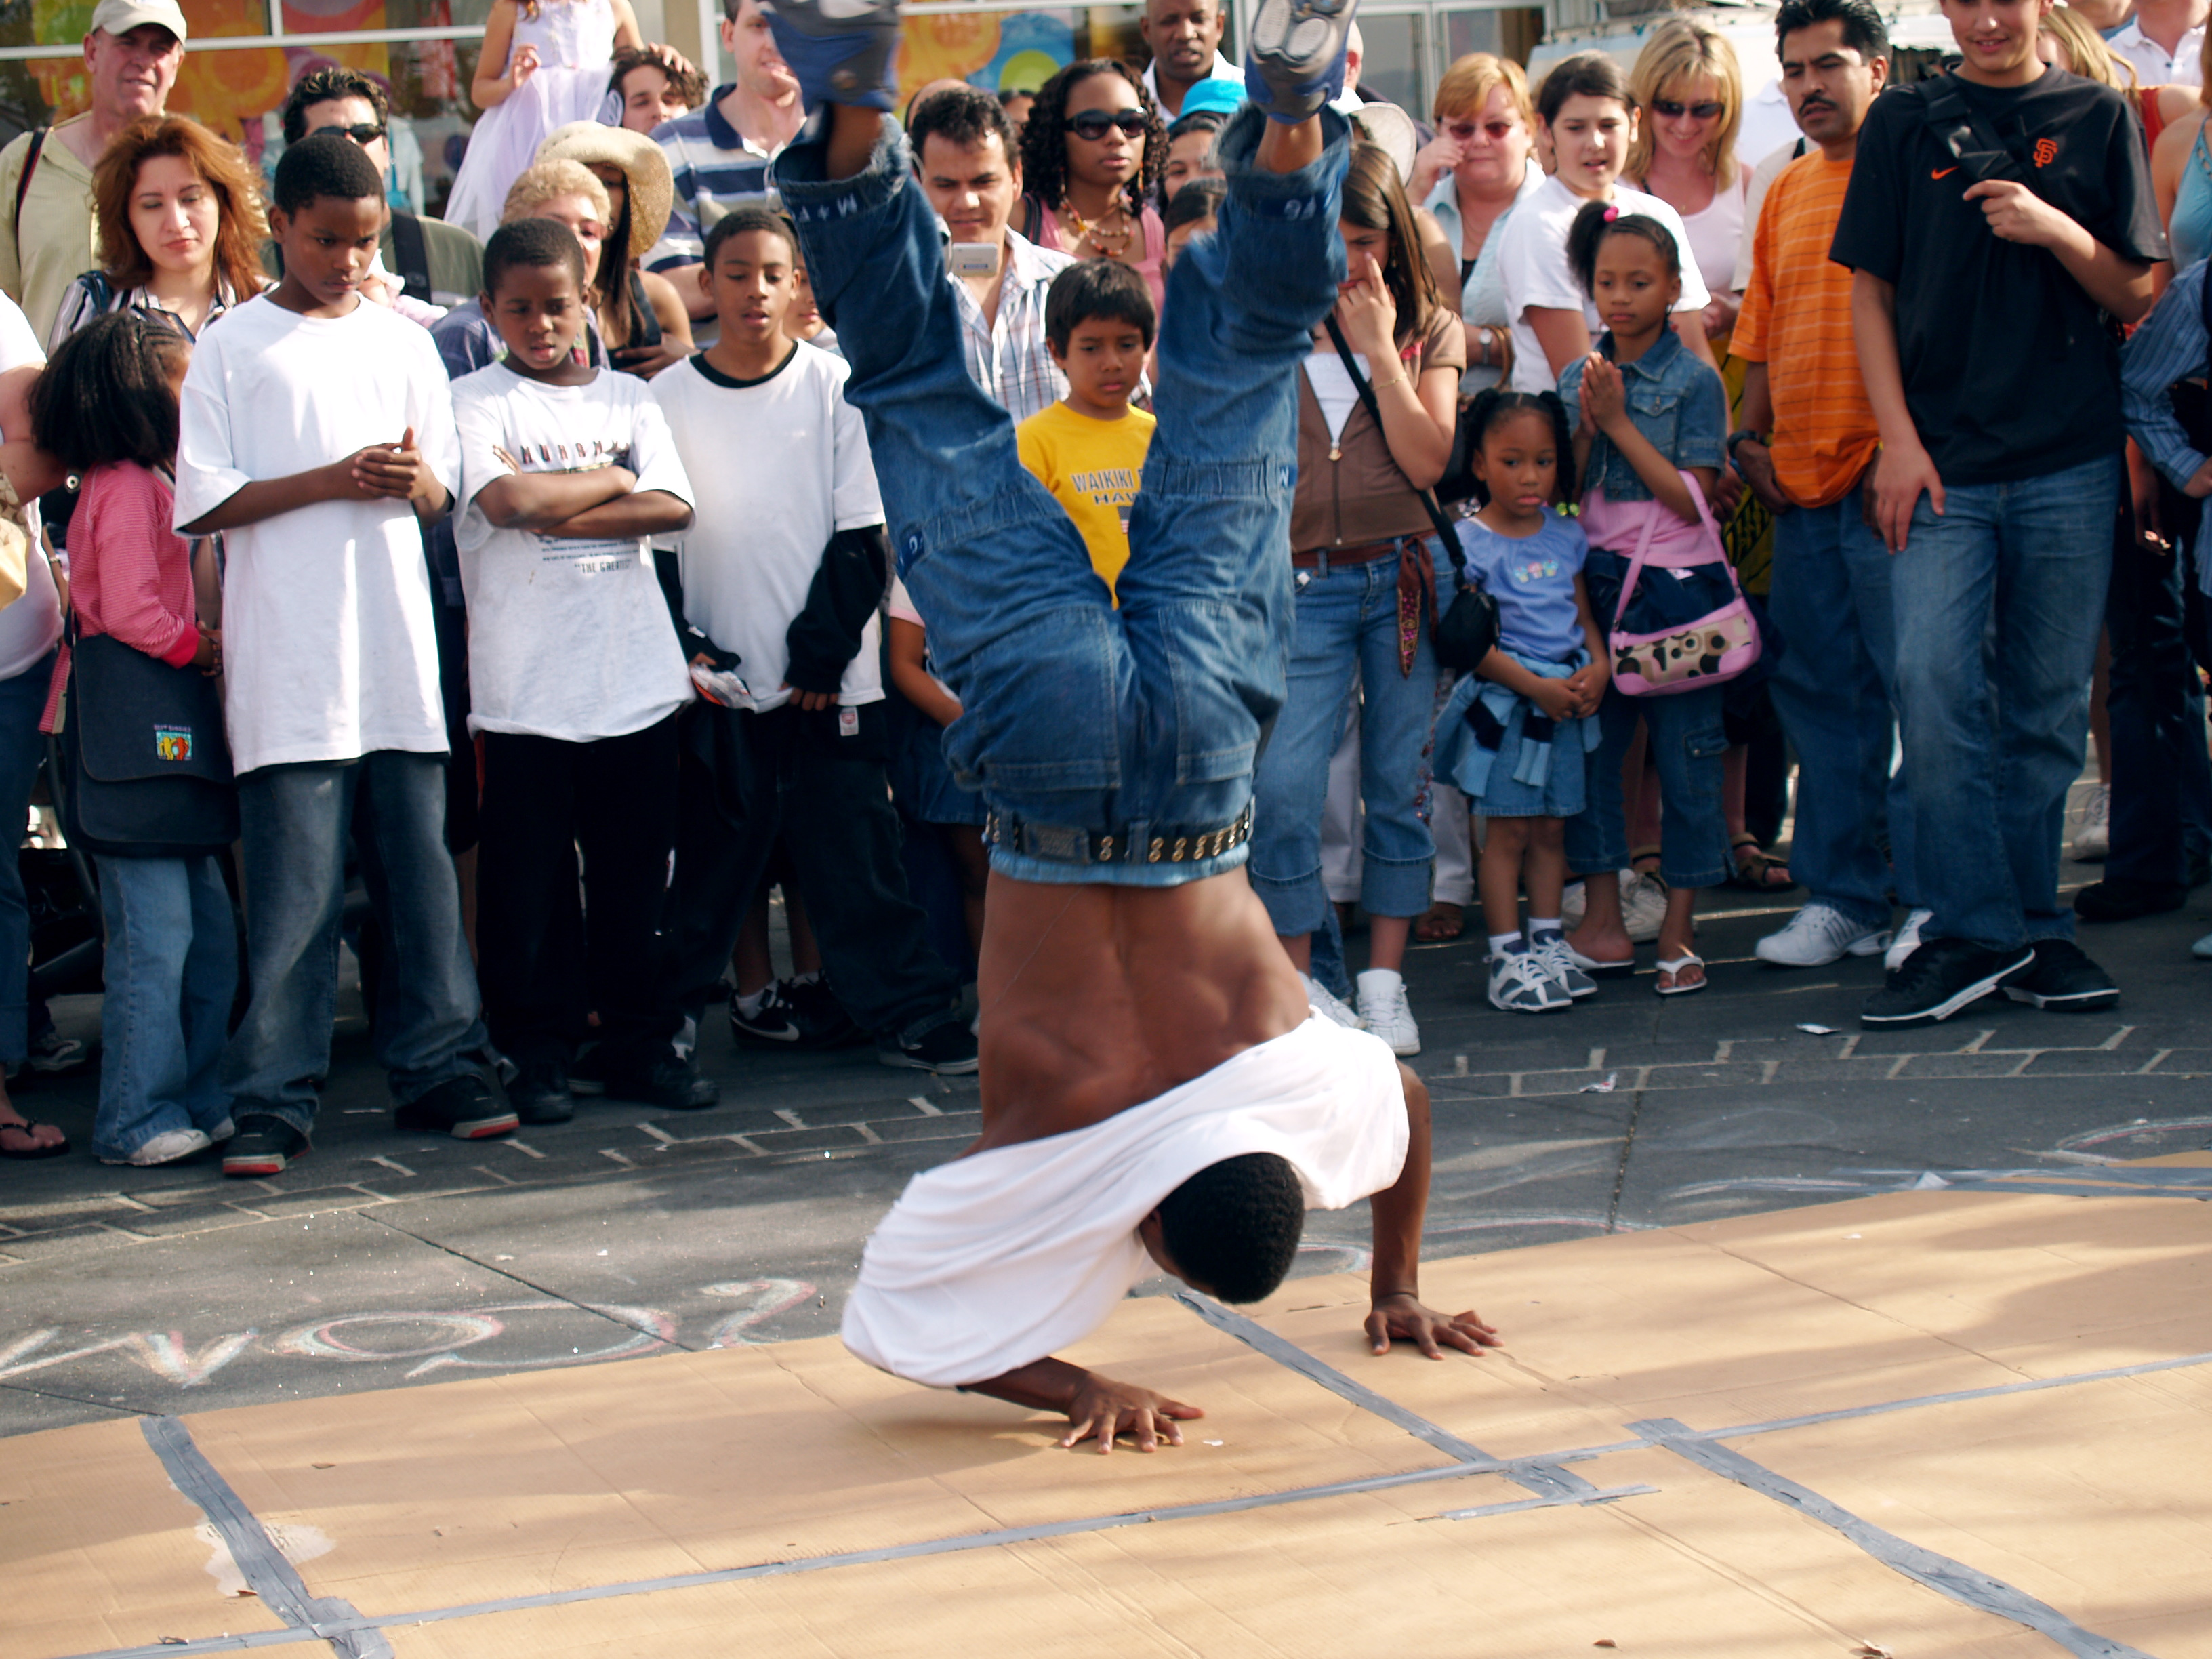 B-boys – Subcultures and Sociology